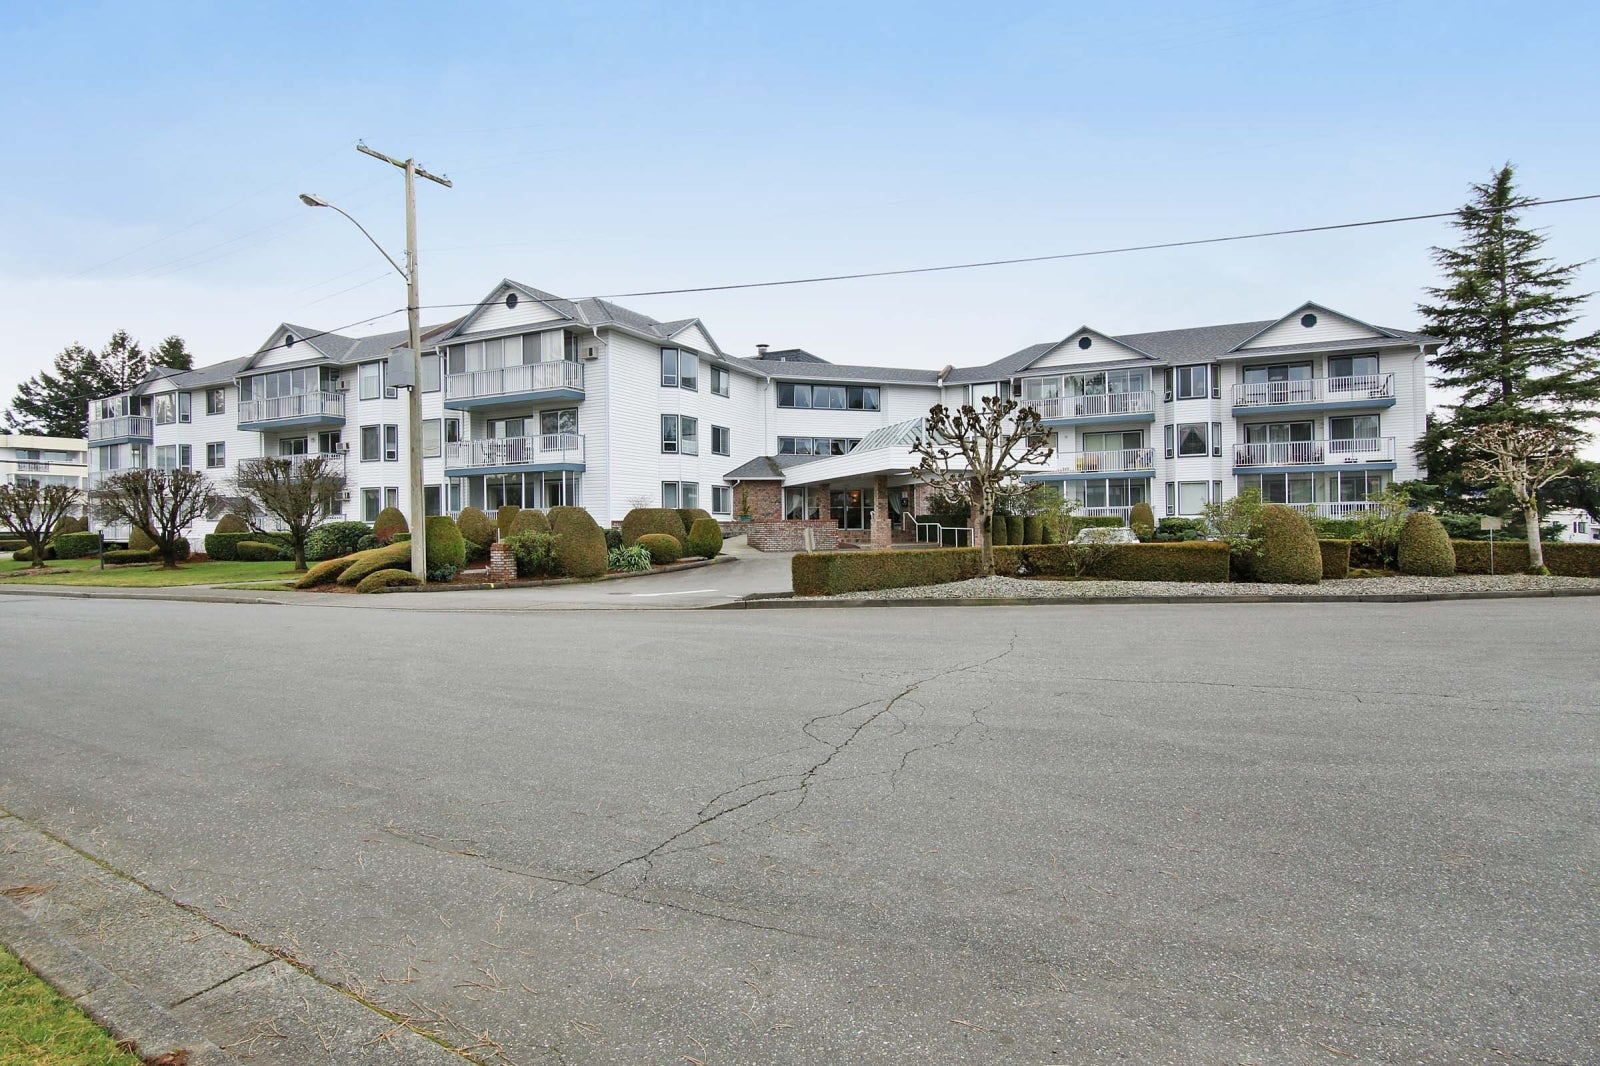 210 2425 CHURCH STREET - Abbotsford West Apartment/Condo for sale, 2 Bedrooms (R2251162) #1